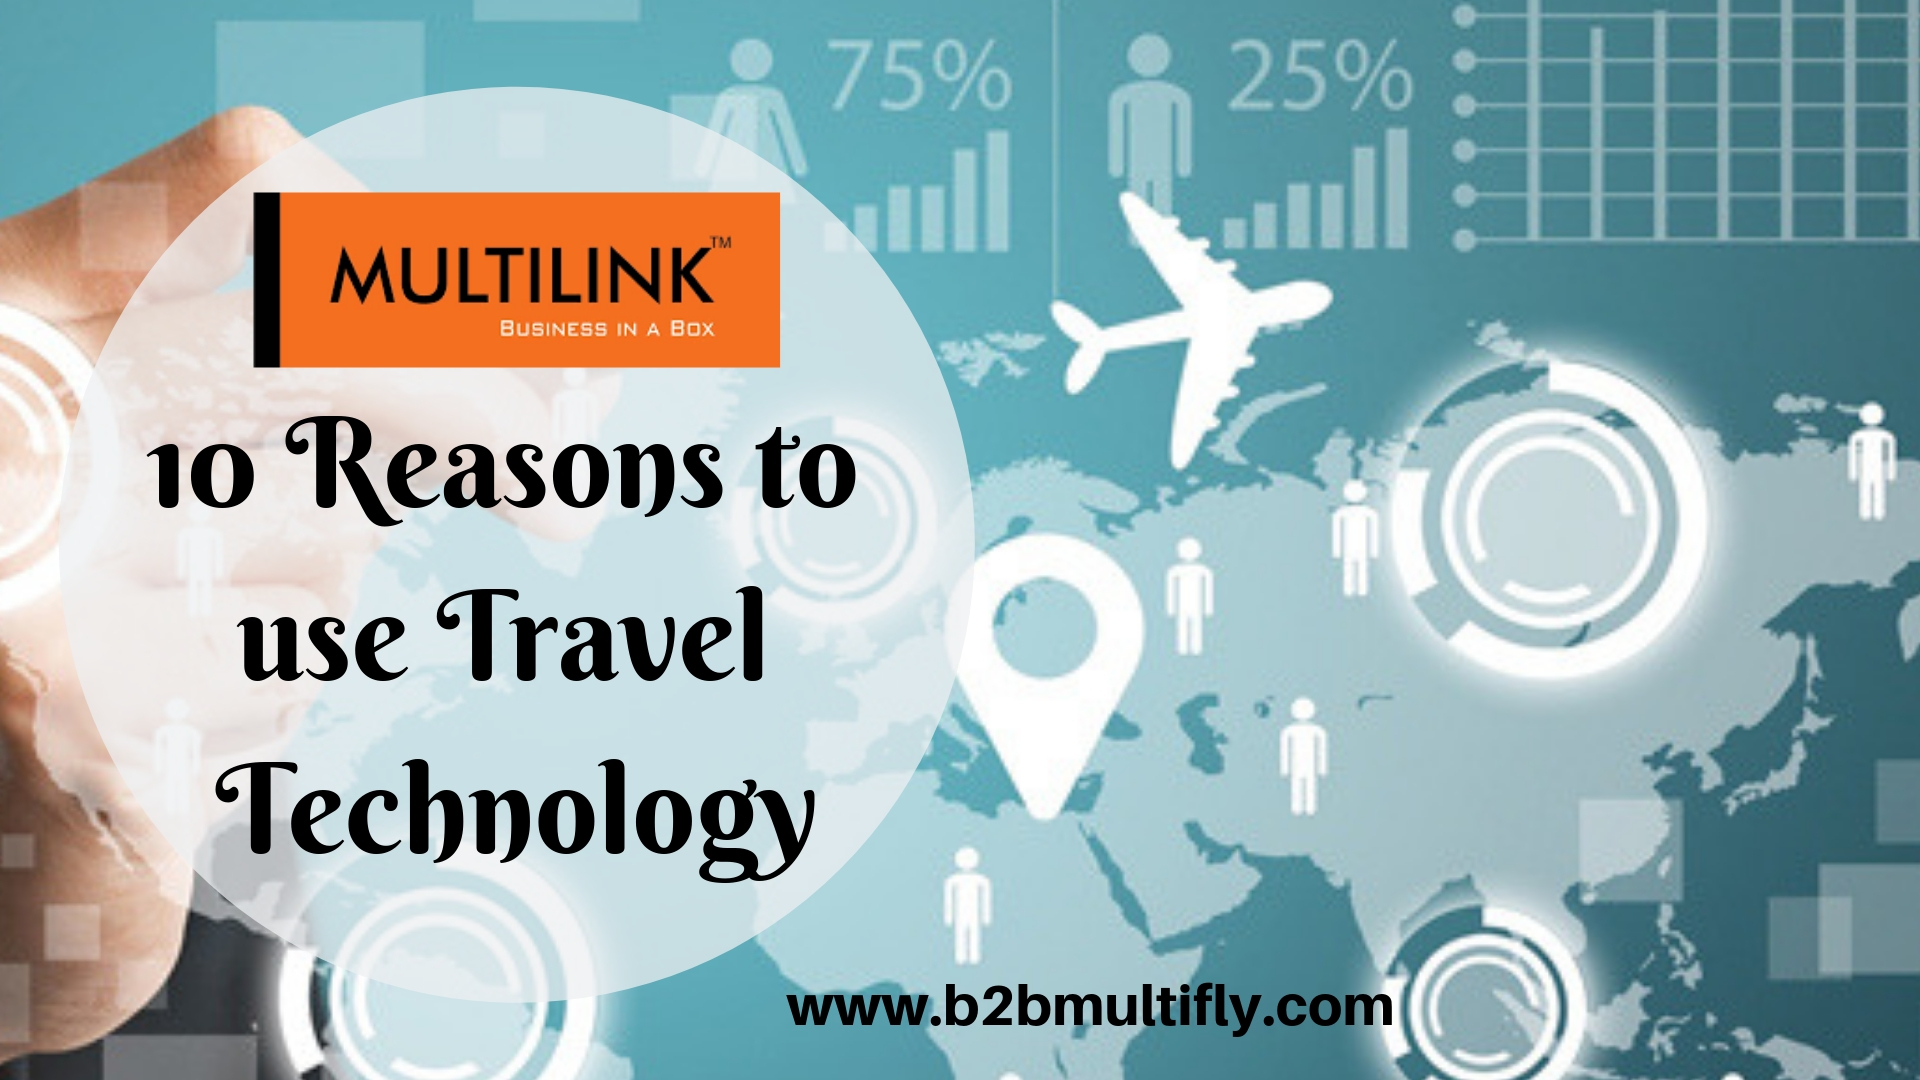 10 Reasons to use travel technology